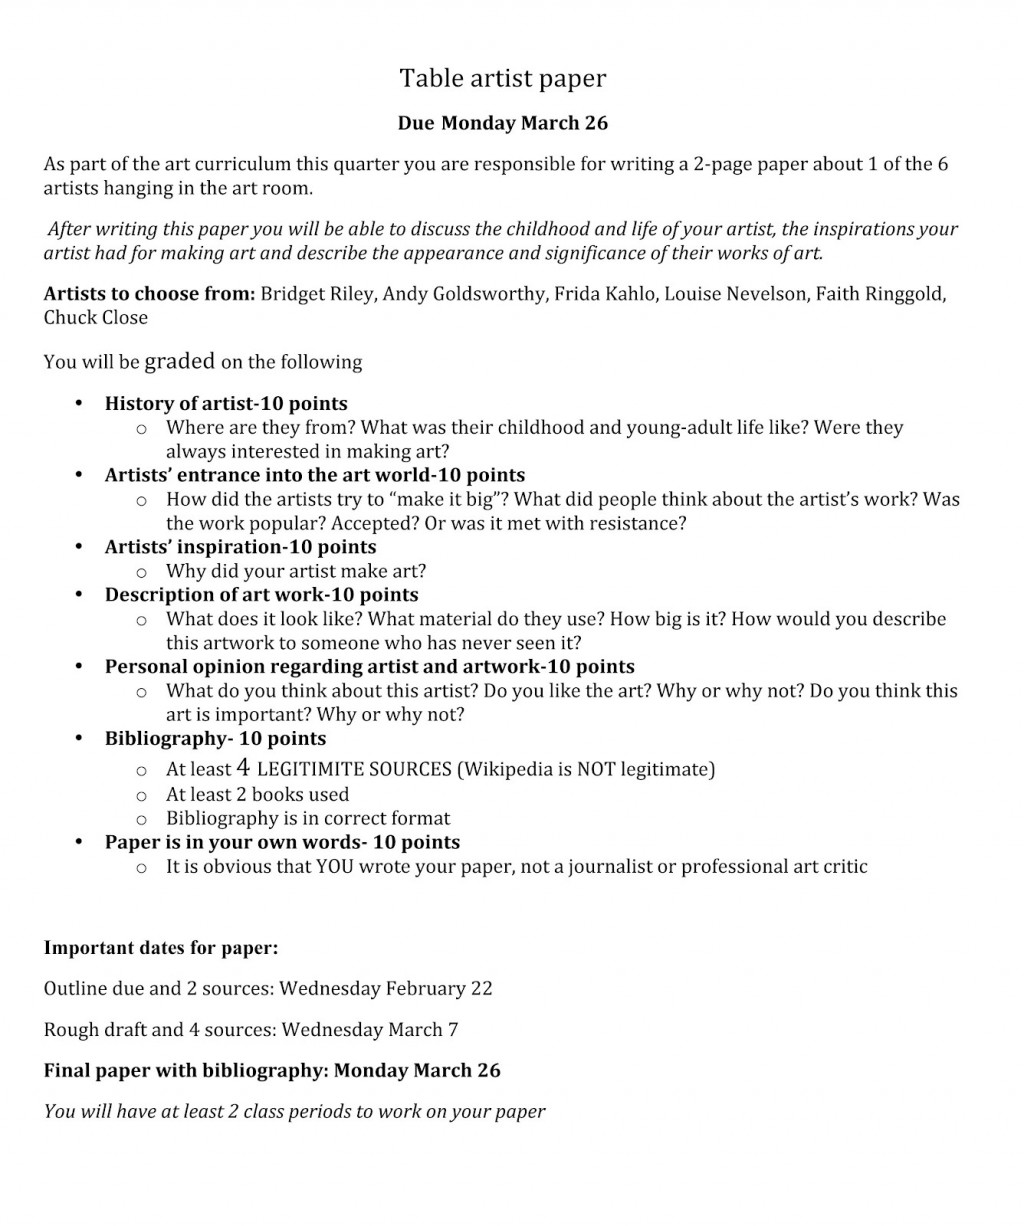 007 Tableartistpaper Research Paper Argumentative Topics For College Archaicawful English Large